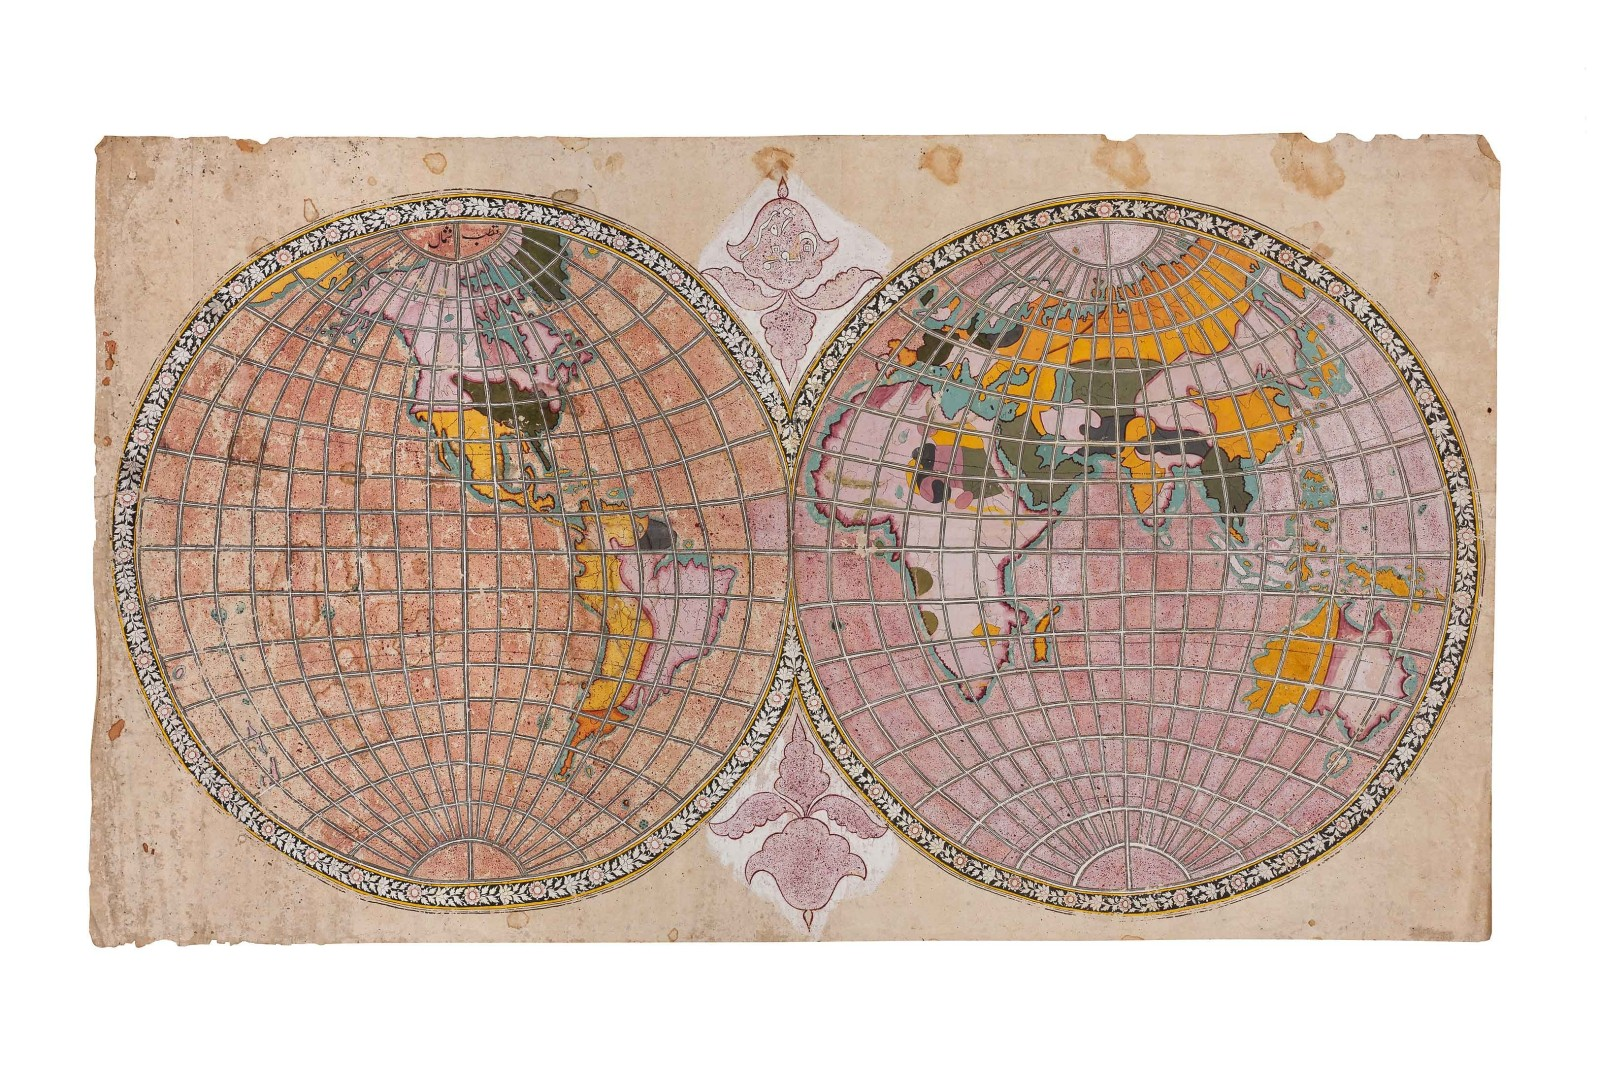 Map of the world in two hemispheres, Rajasthan, possibly Jaipur, c. 1808-1817